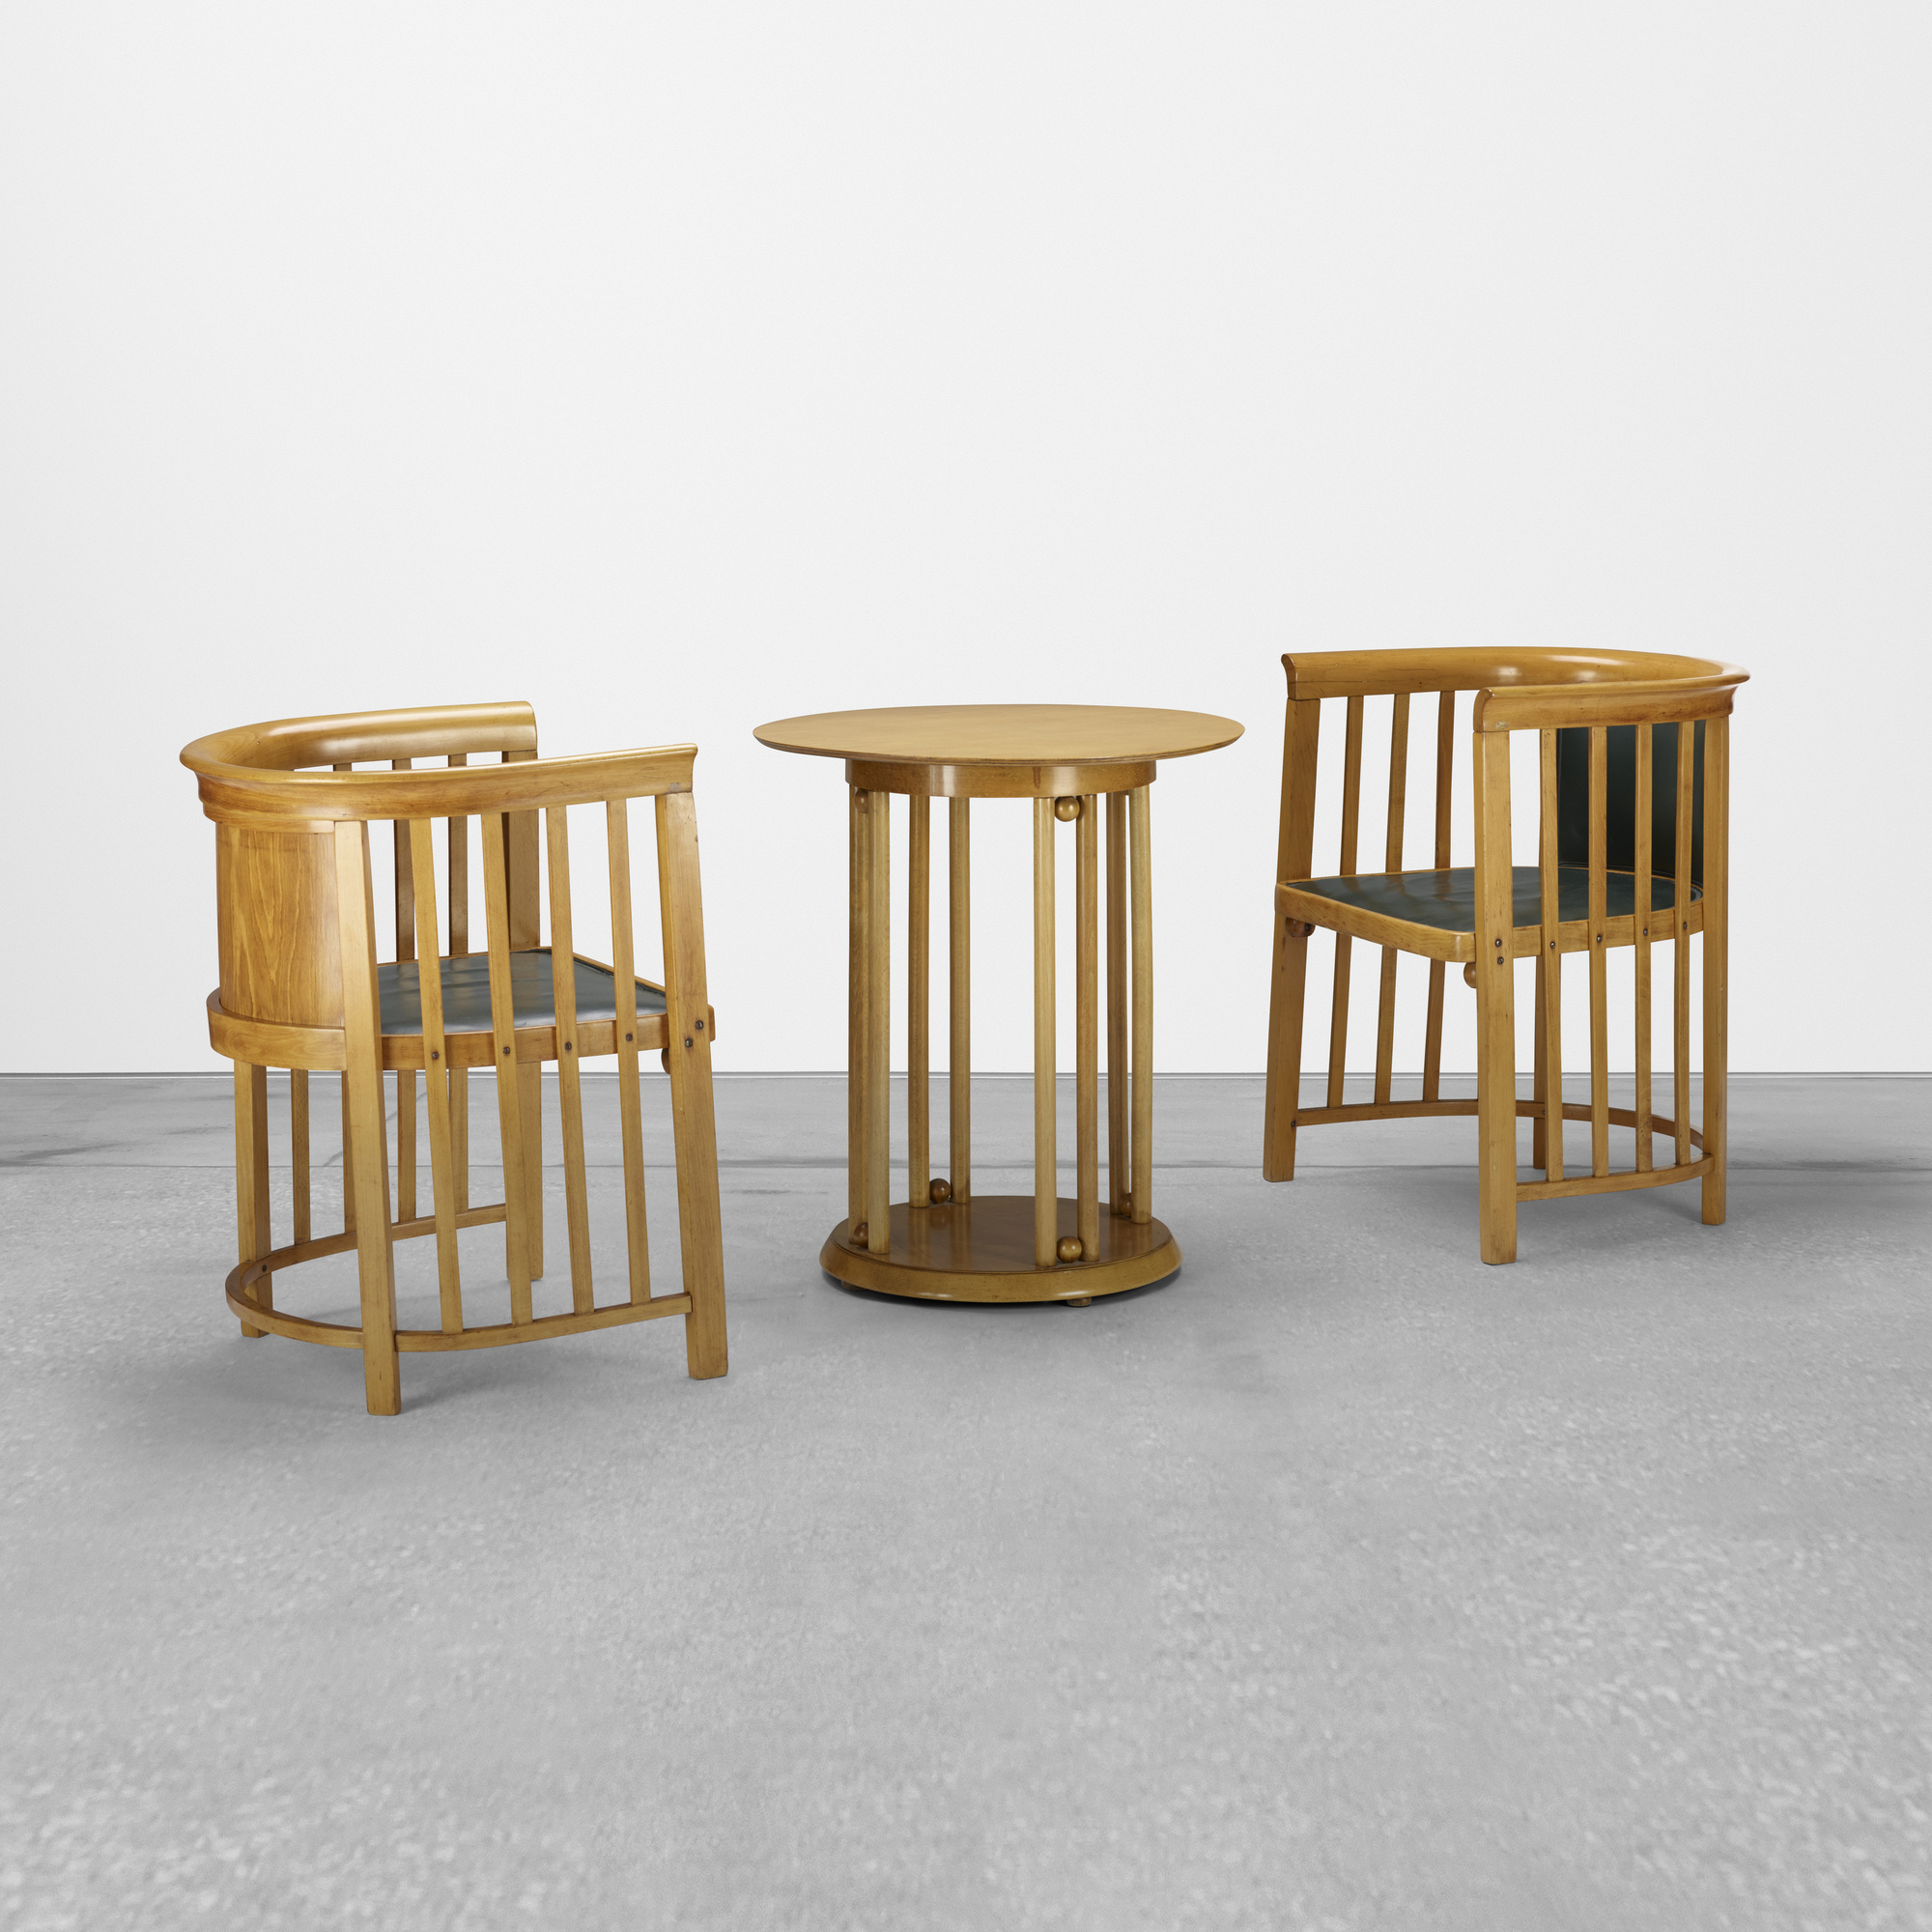 166: Josef Hoffmann / pair of chairs and occasional table (1 of 2)